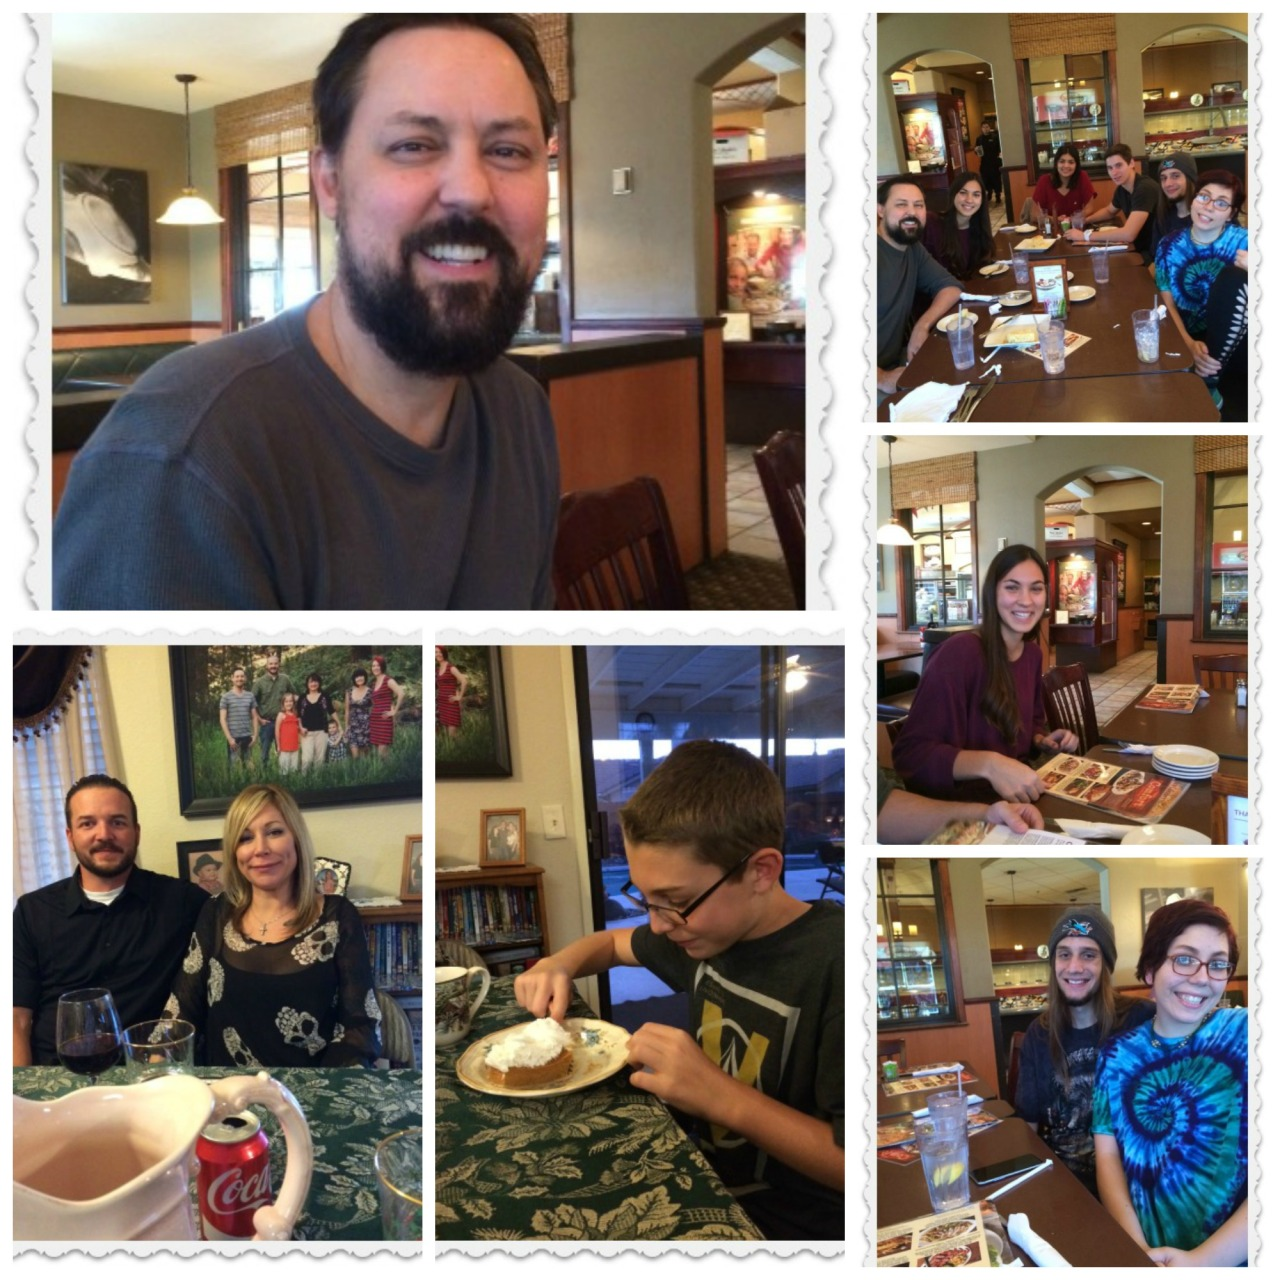 PicMonkey Collage-Thanksgiving collage - 2015